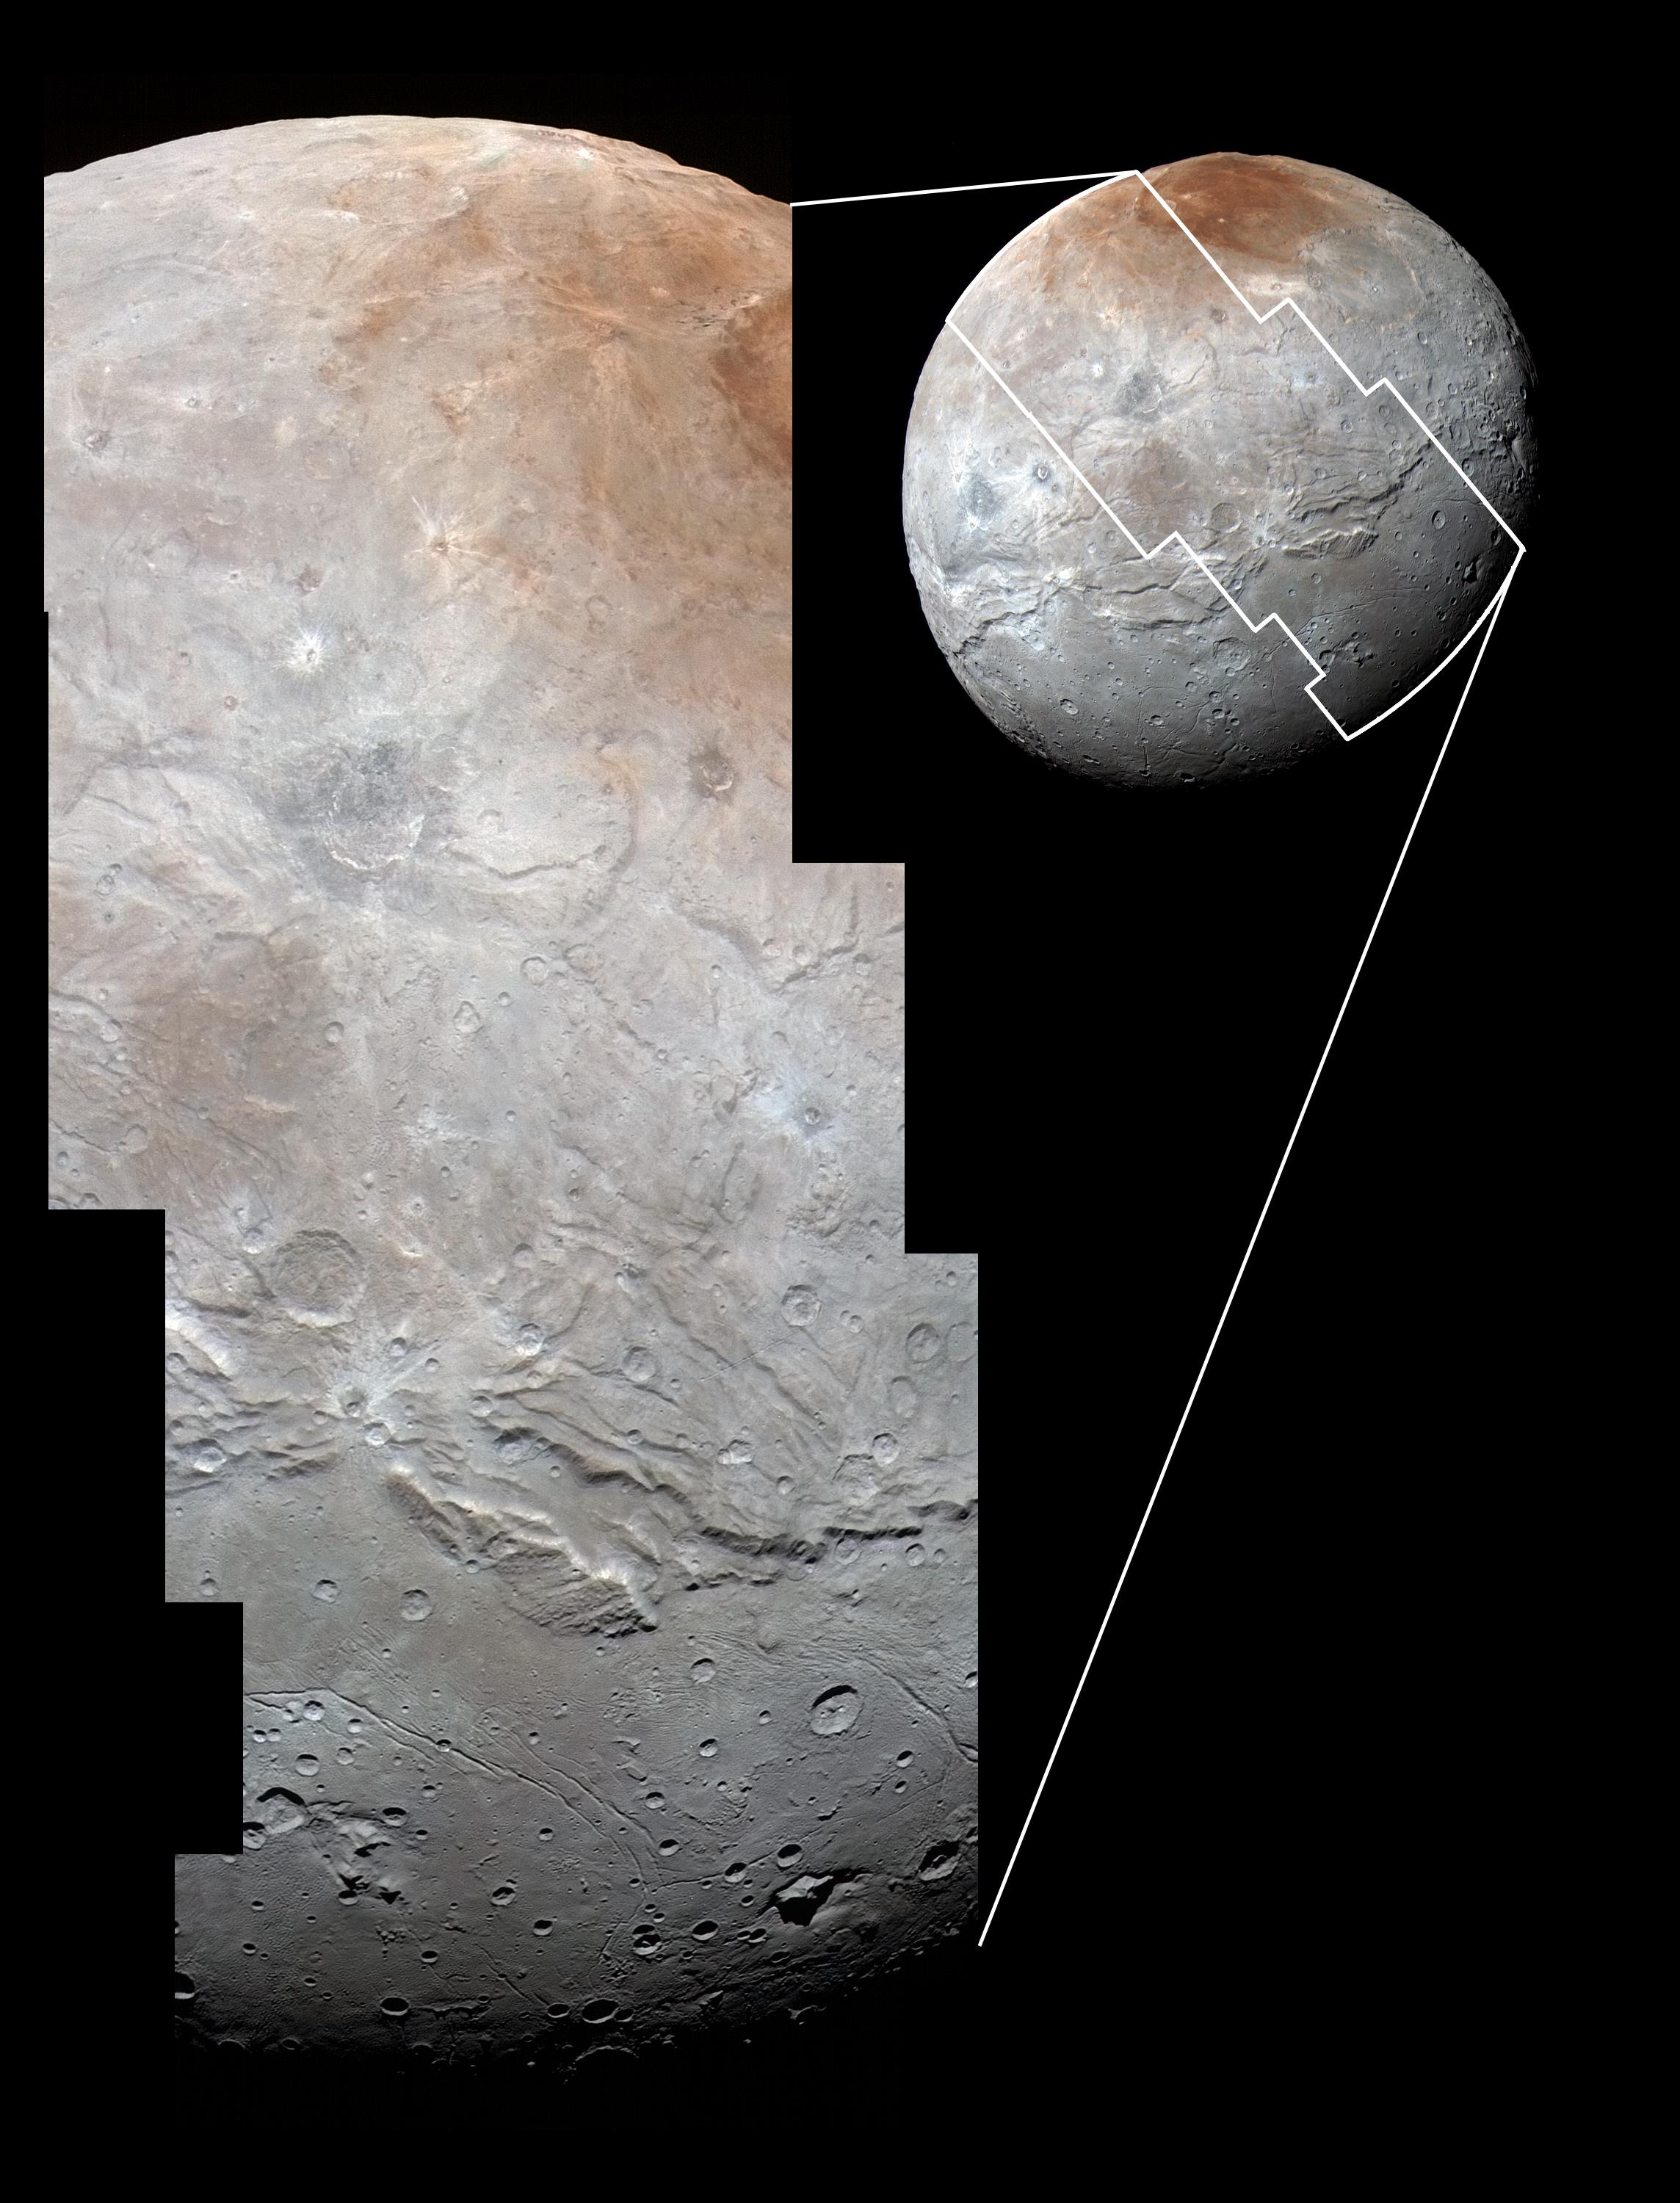 Sharper than the view above, this image combines high-resolution imagery from New Horizons' telescopic LORRI black and white camera with color data from the Ralph instrument. Features as small as a half-mile (0.8 kilometers) are resolved here. Credit: NASA/Johns Hopkins University Applied Physics Laboratory/Southwest Research Institute